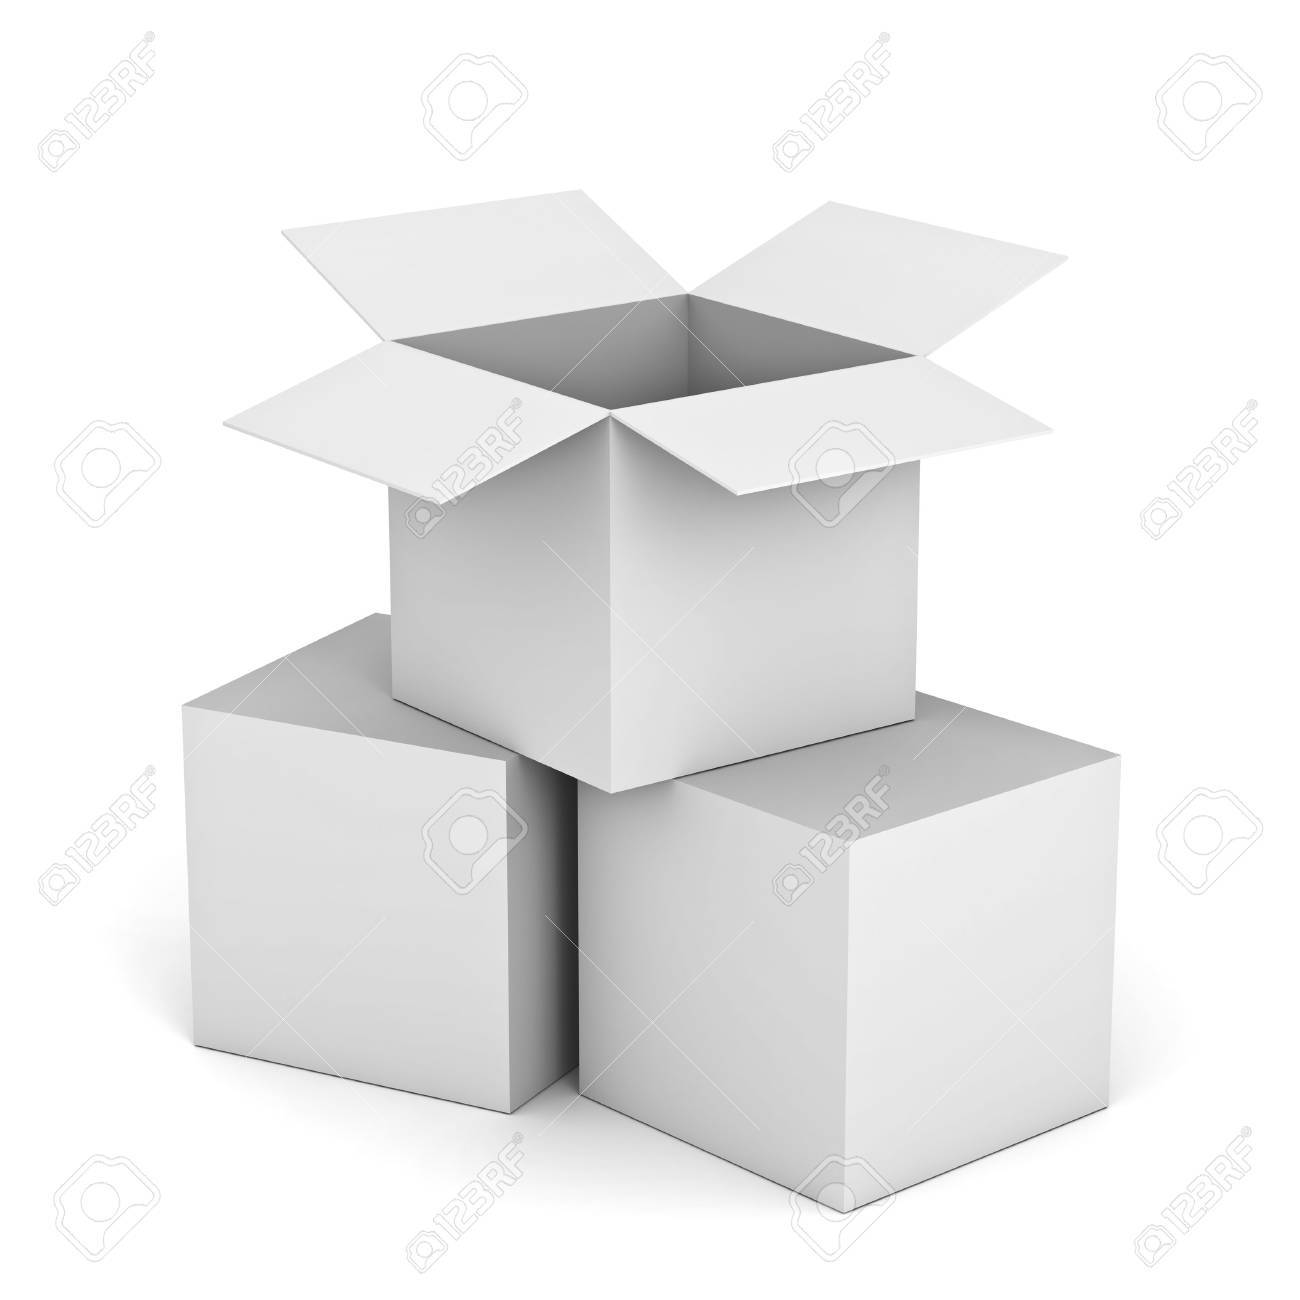 white cardboard box. white opened cardboard box on top of closed boxes isolated background stock photo